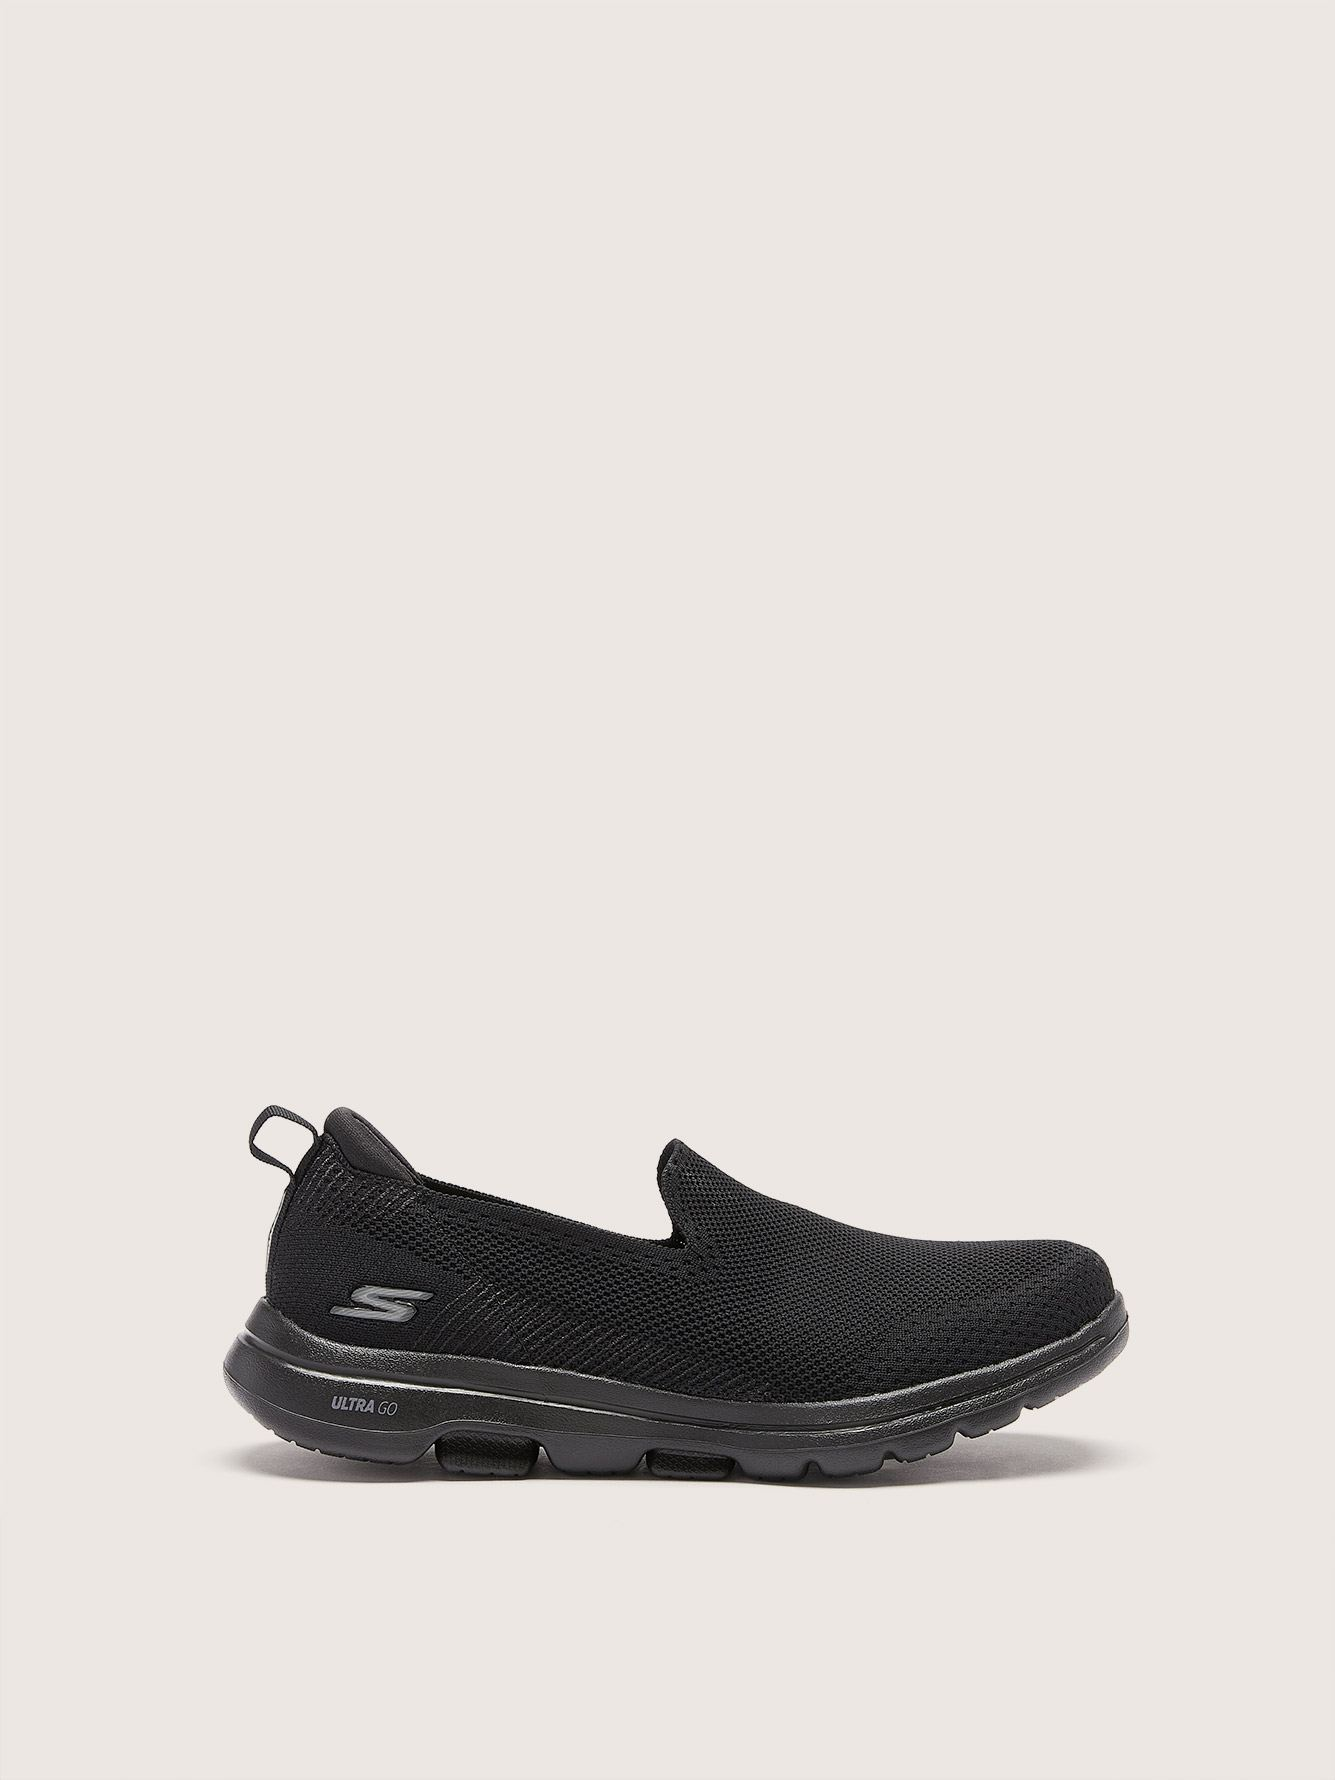 Wide GOWALK 5 Slip On Sneakers - Skechers